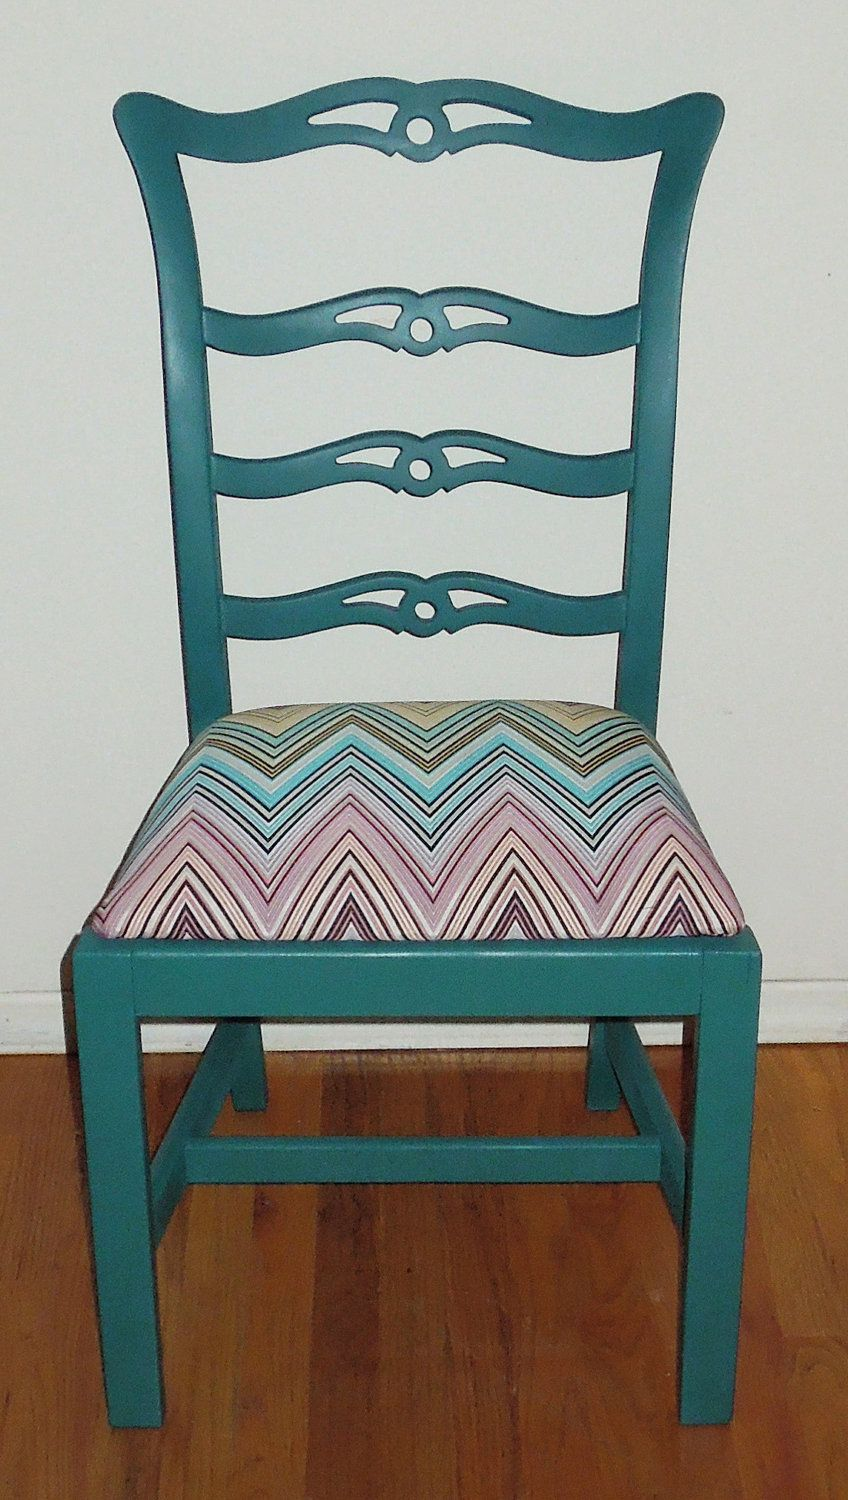 Bankers chair leather - Refurbished Vintage Teal Painted Wooden Chair 180 00 Via Etsy